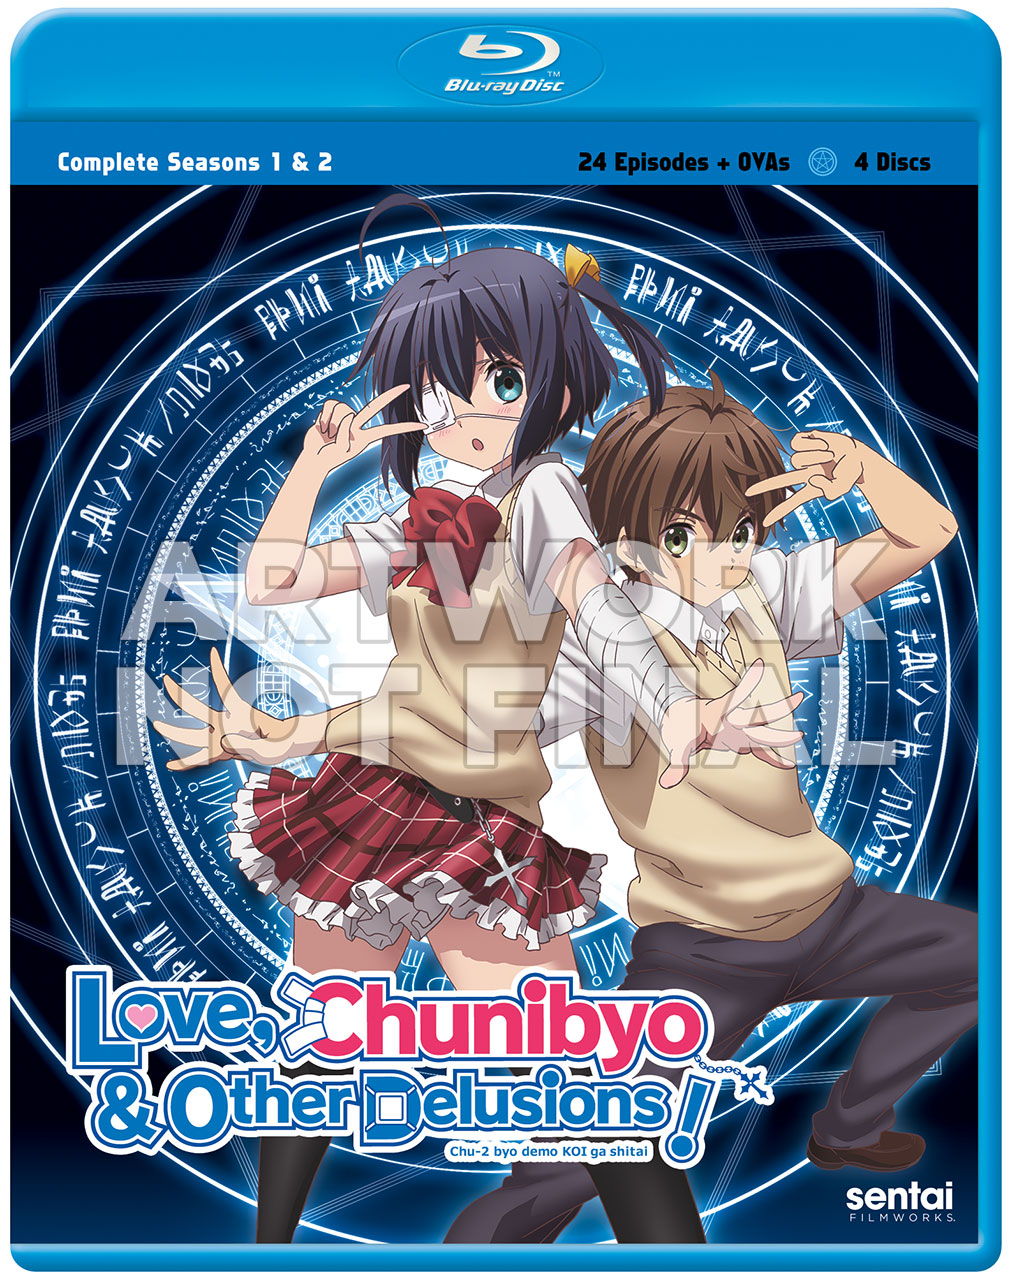 Love, Chunibyo & Other Delusions complete box art